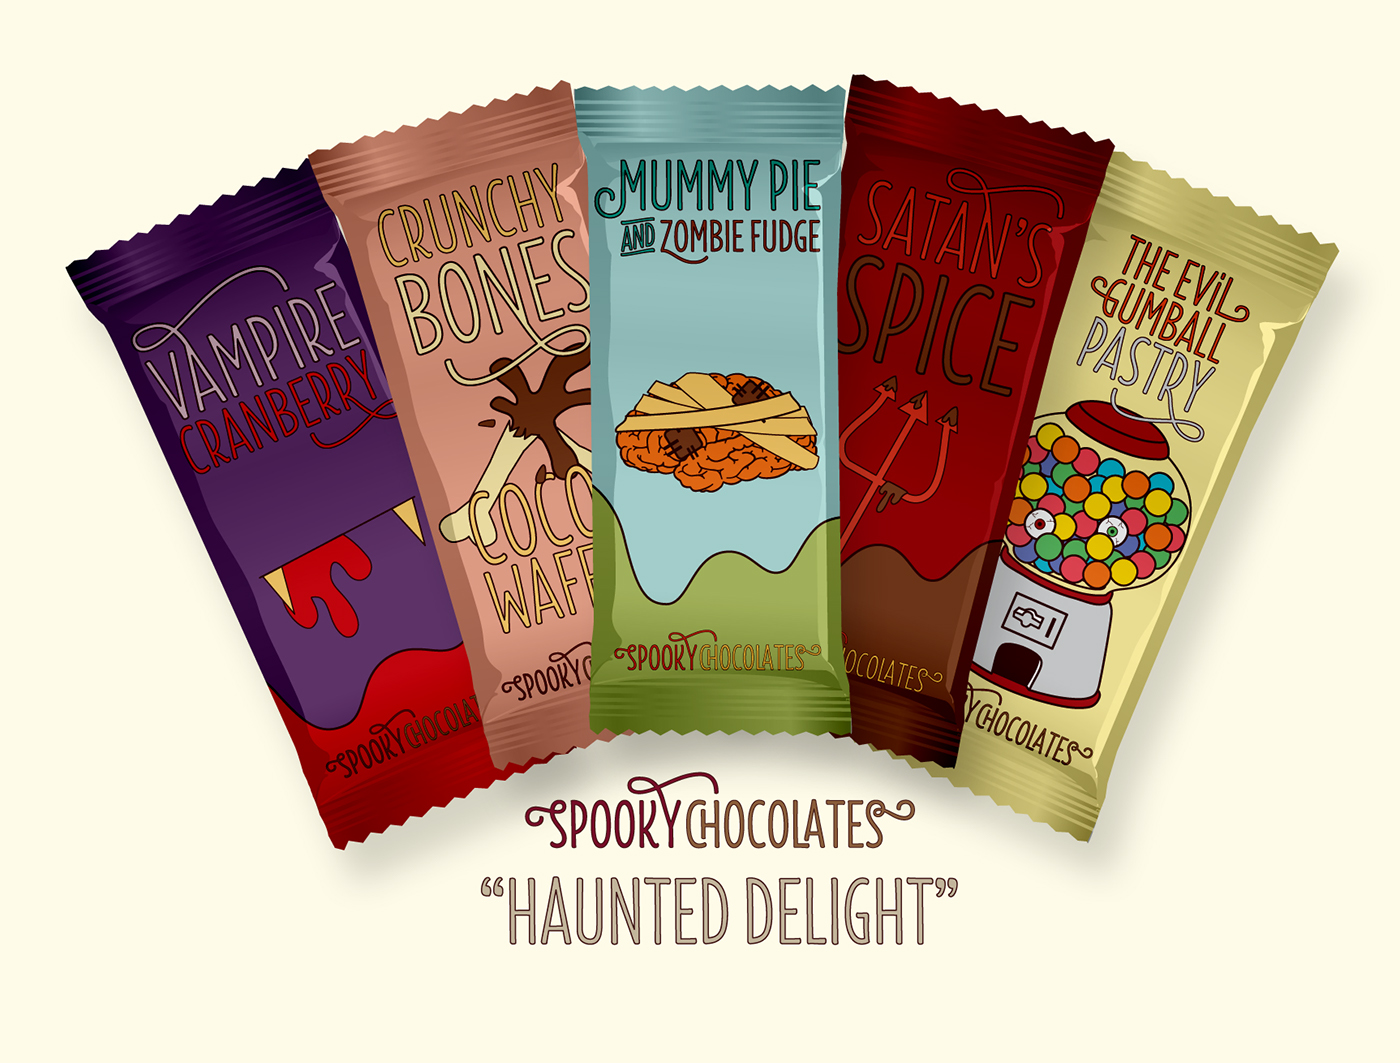 SPOOKY CHOCOLATES